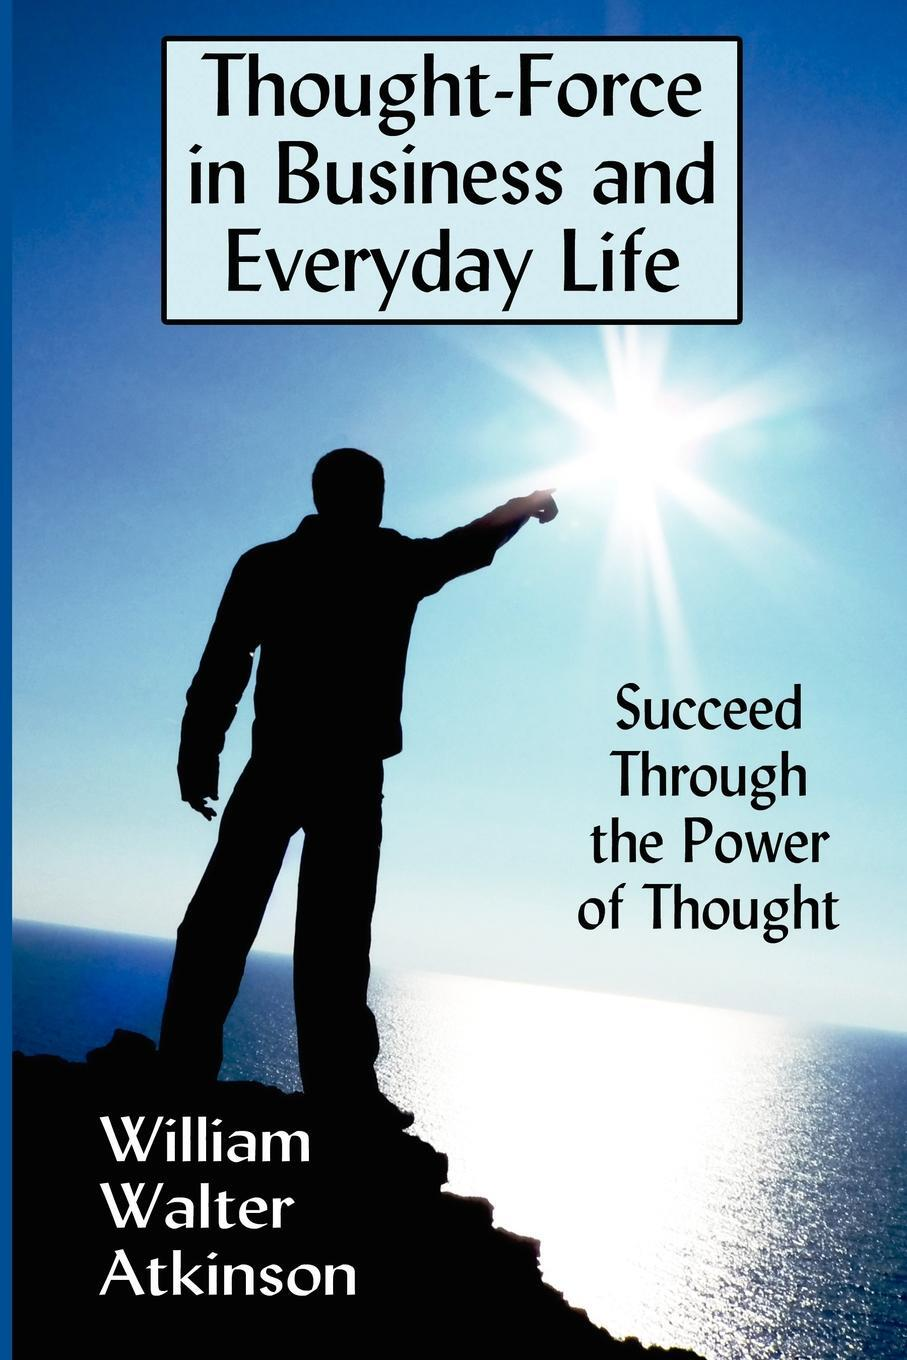 Thought-Force in Business and Everyday Life. Succeed Through the Power of Thought